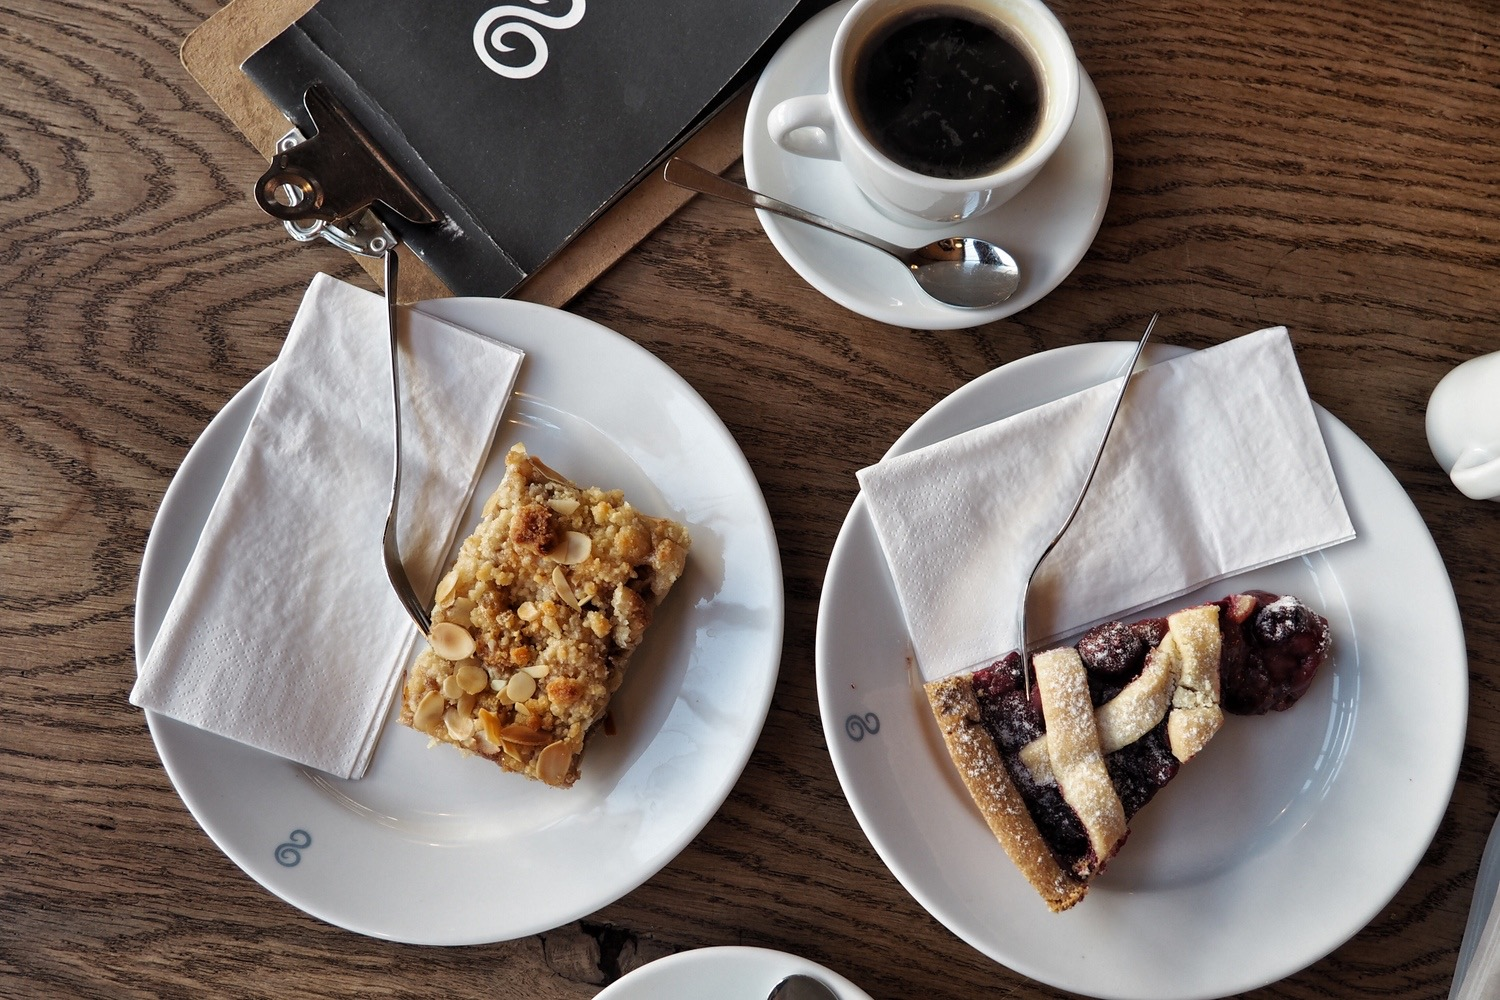 Vegan Pie Cake and Coffee at Elbgold Hamburg